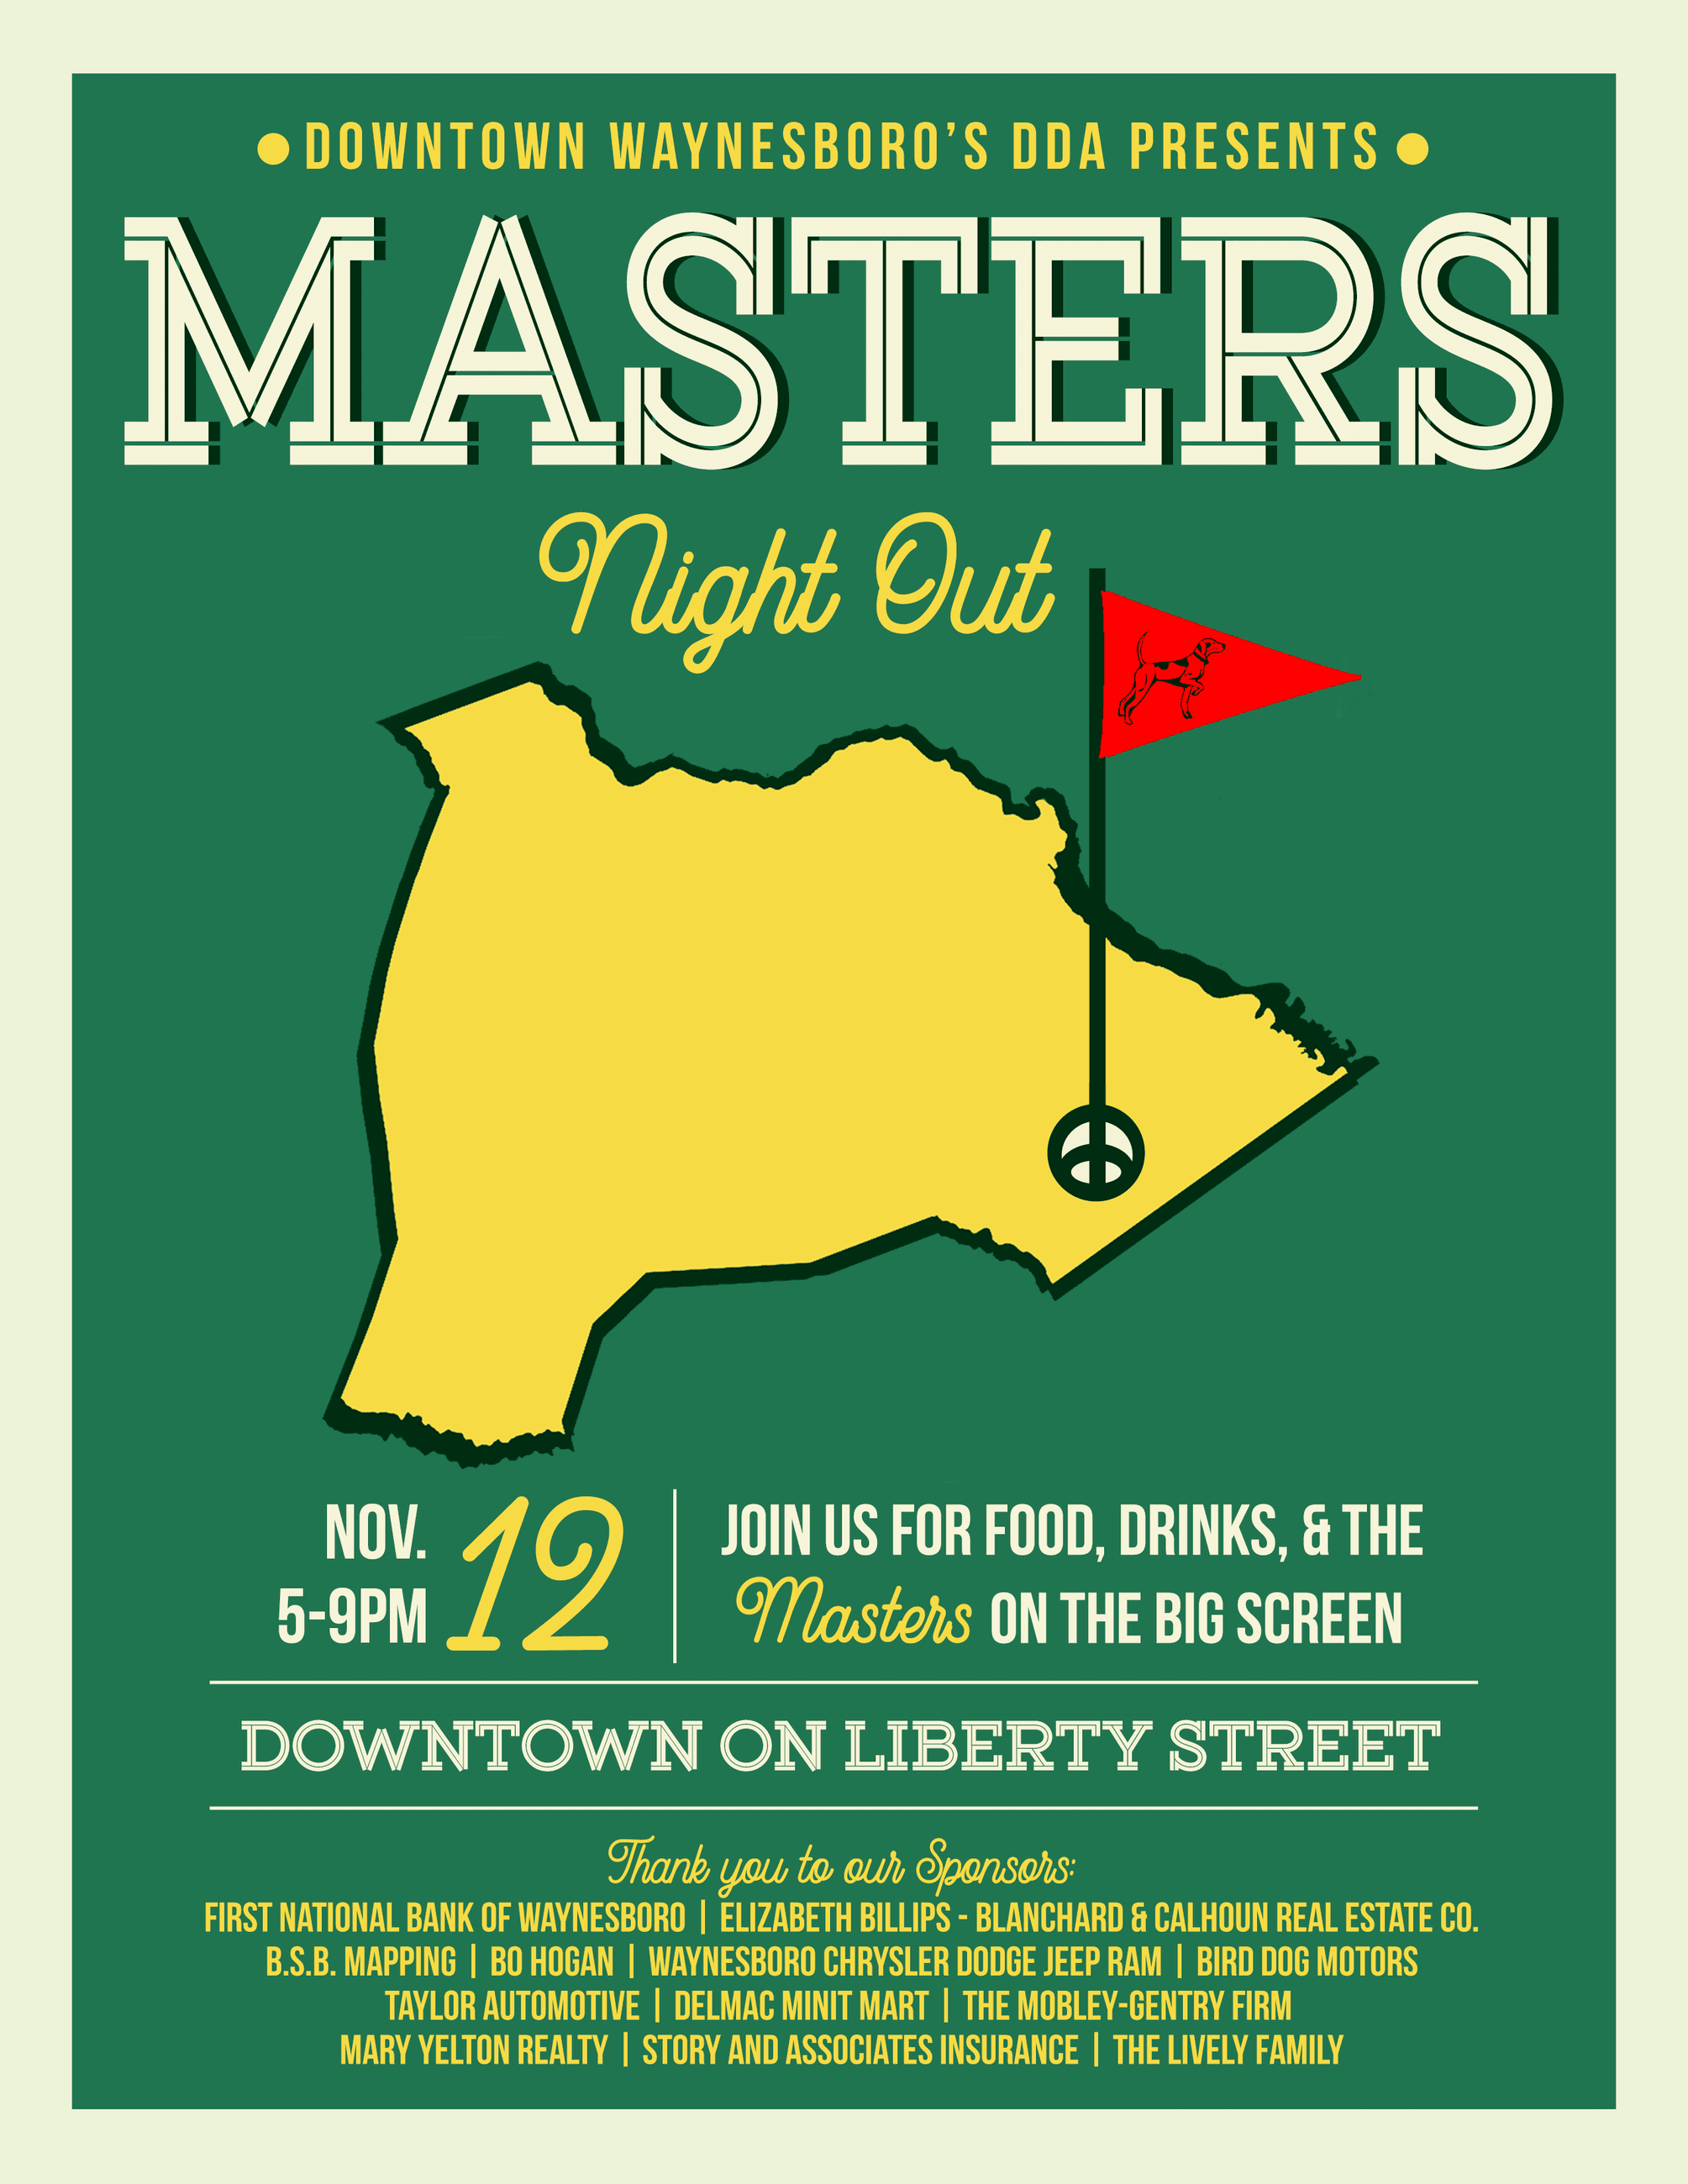 11.12.2020, DDA Masters Event Flyer - UPDATED